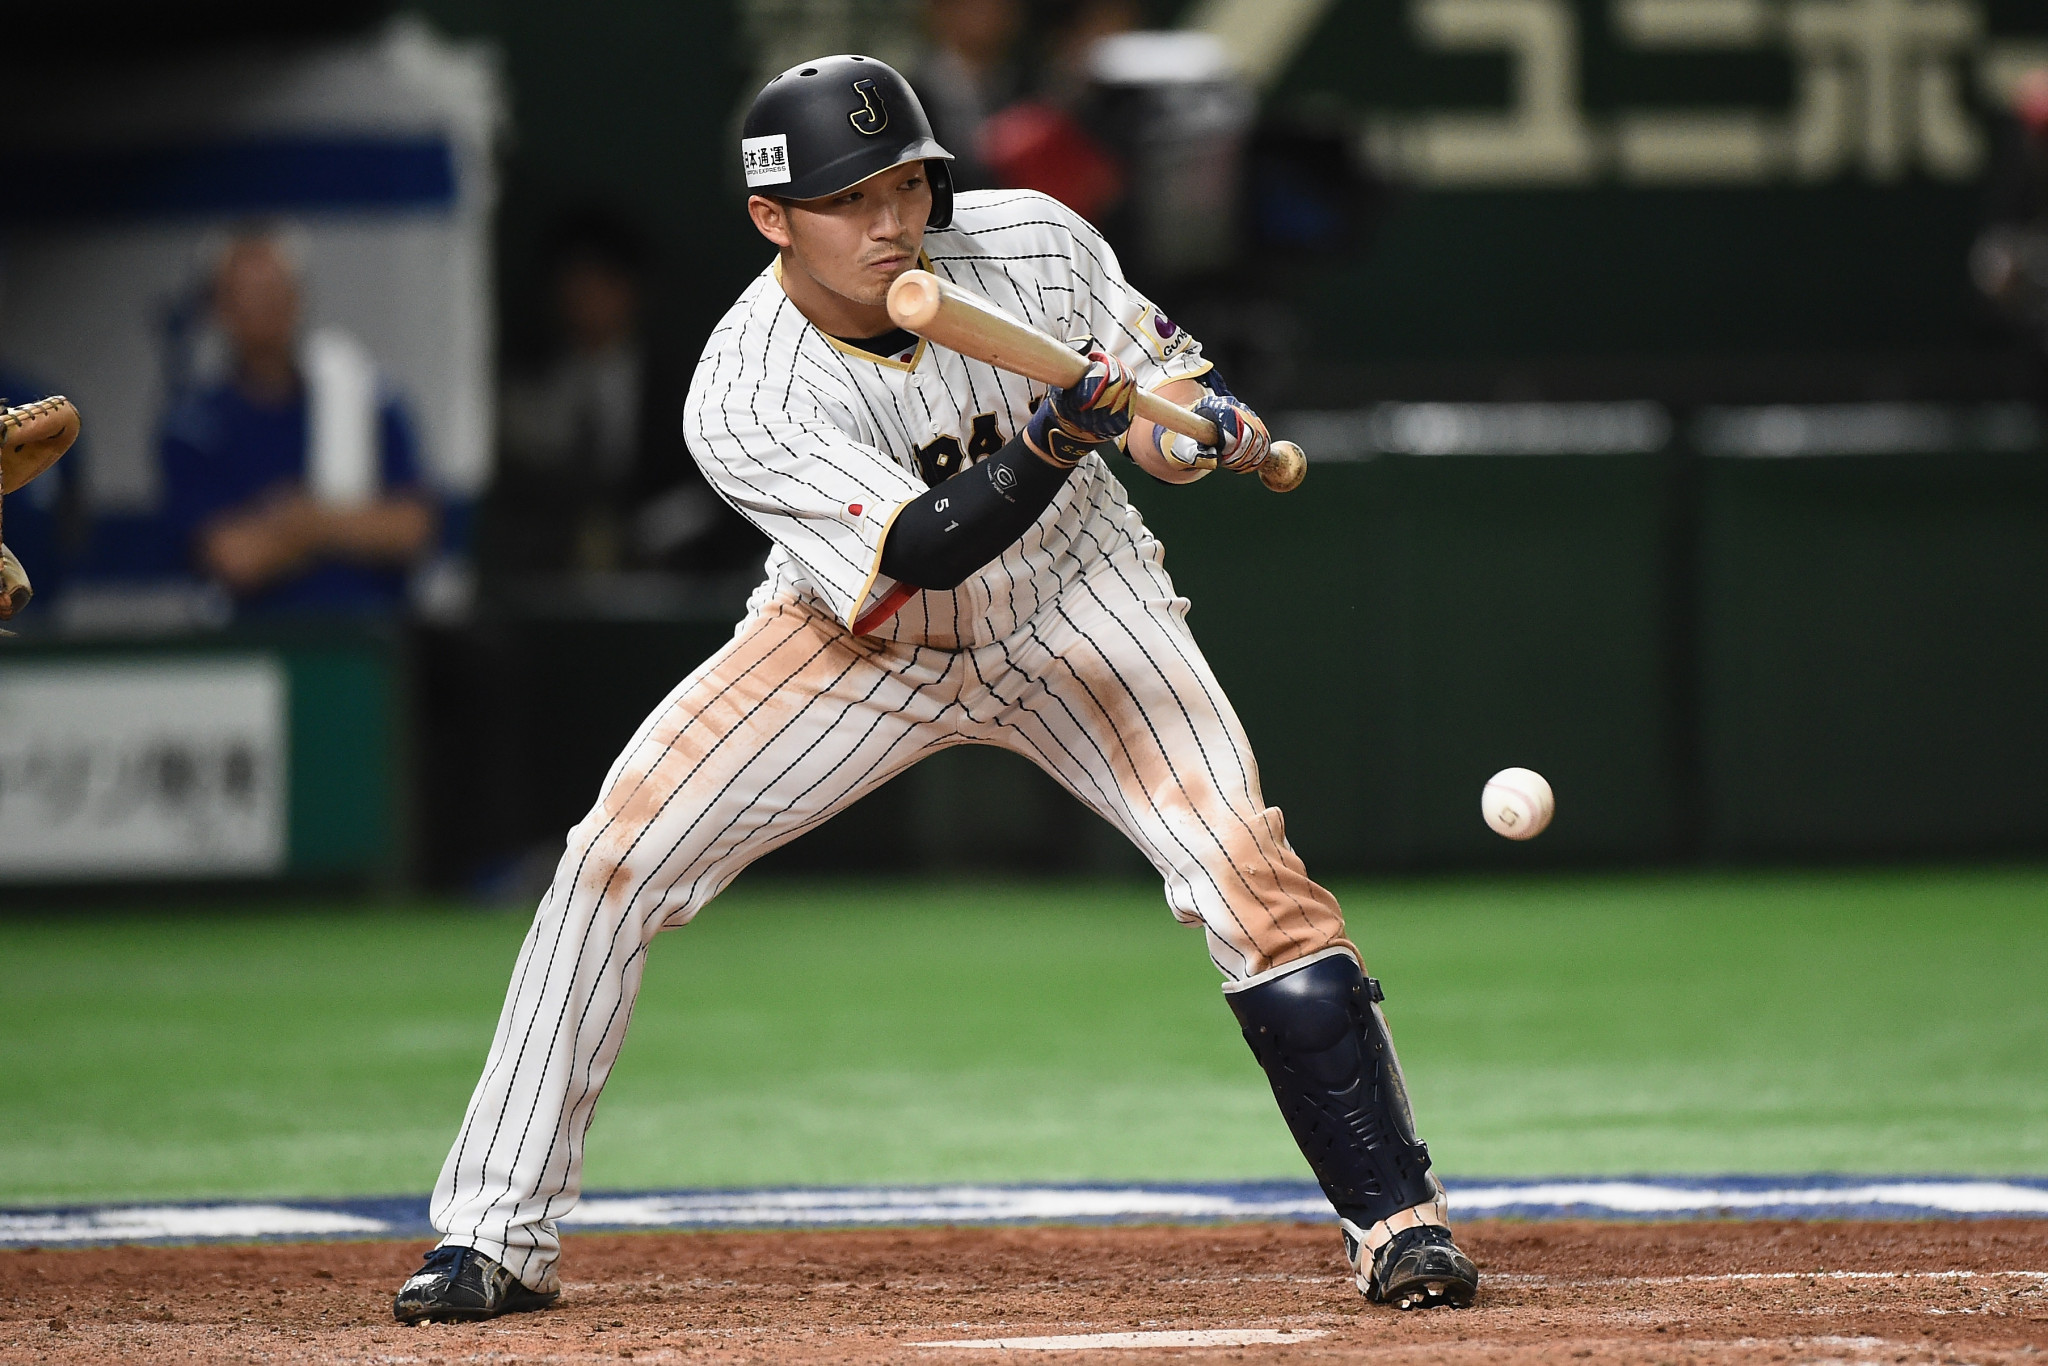 Japan will be hoping for more offensive heroics from Seiya Suzuki, MVP at the 2019 WBSC Premier12 tournament ©Getty Images